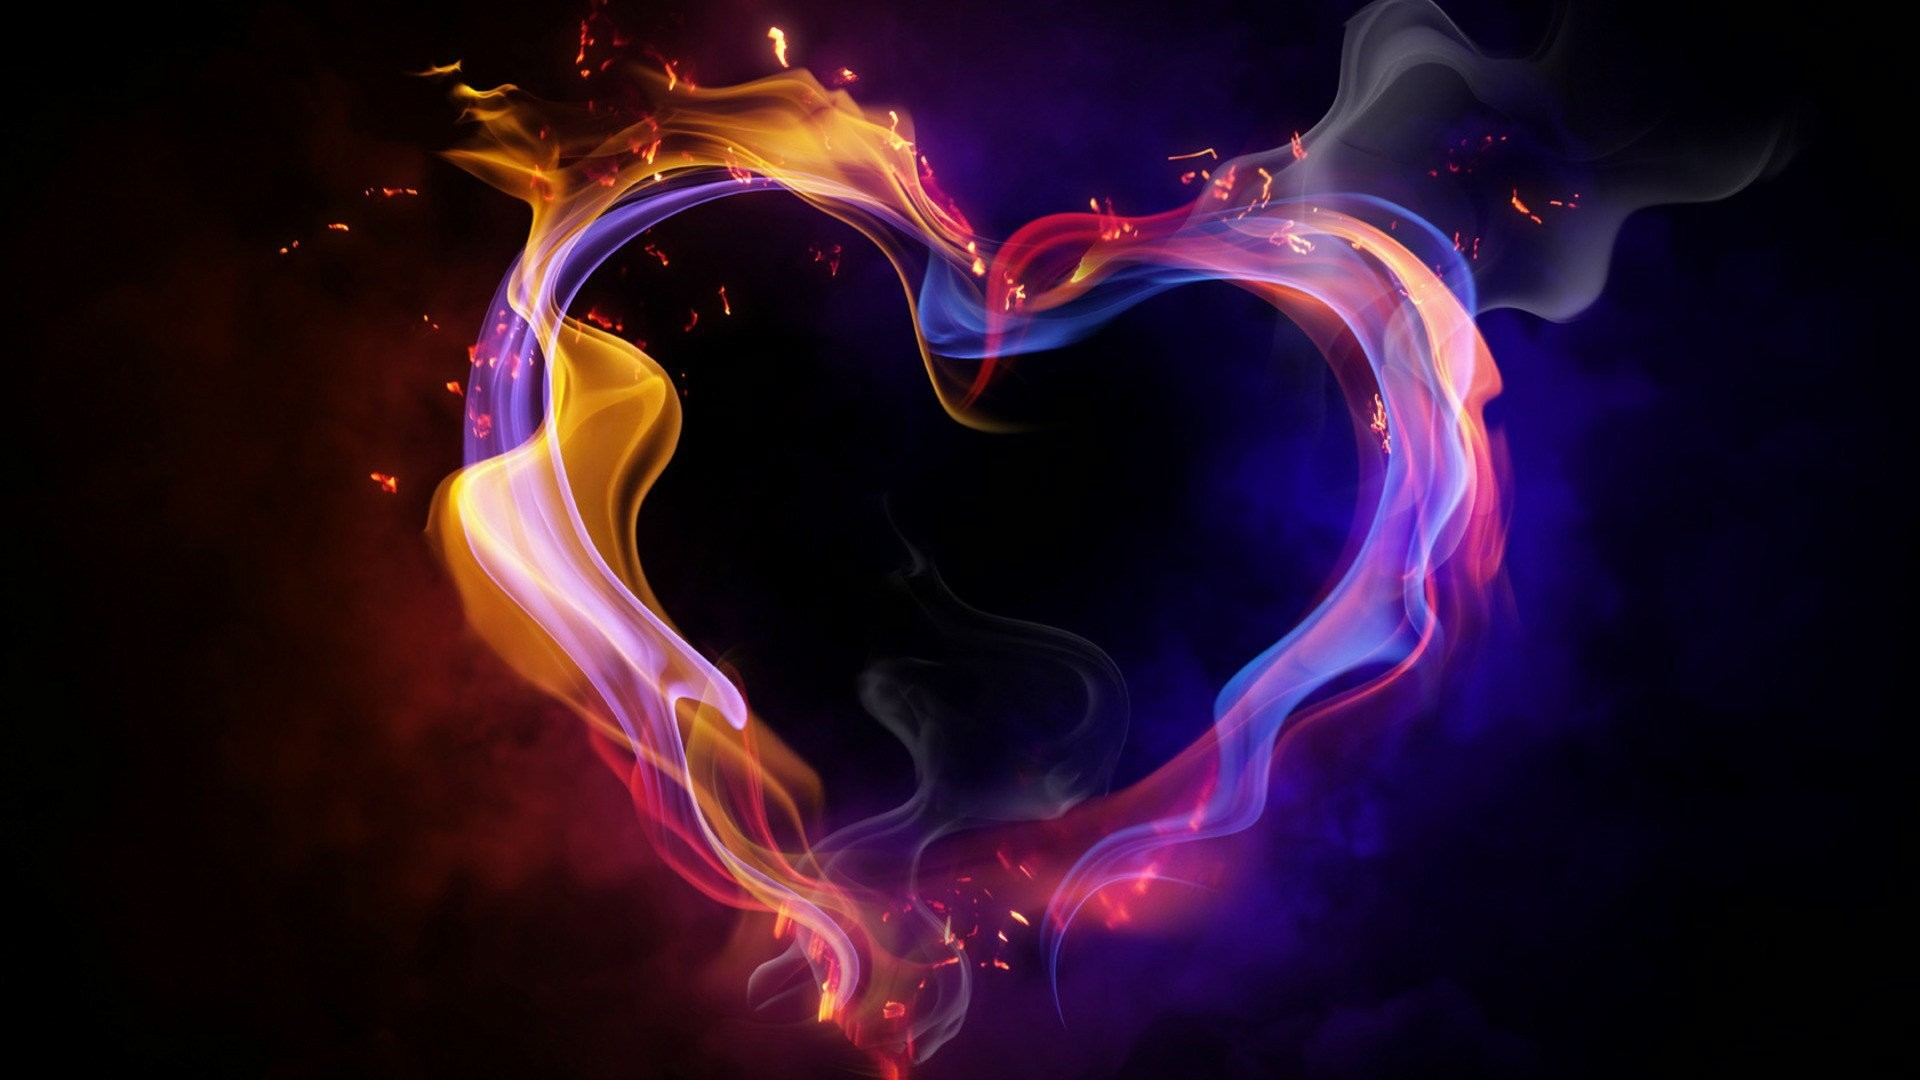 1920x1080 Hd  Cool Color Abstract Heart Desktop Wallpapers Backgrounds